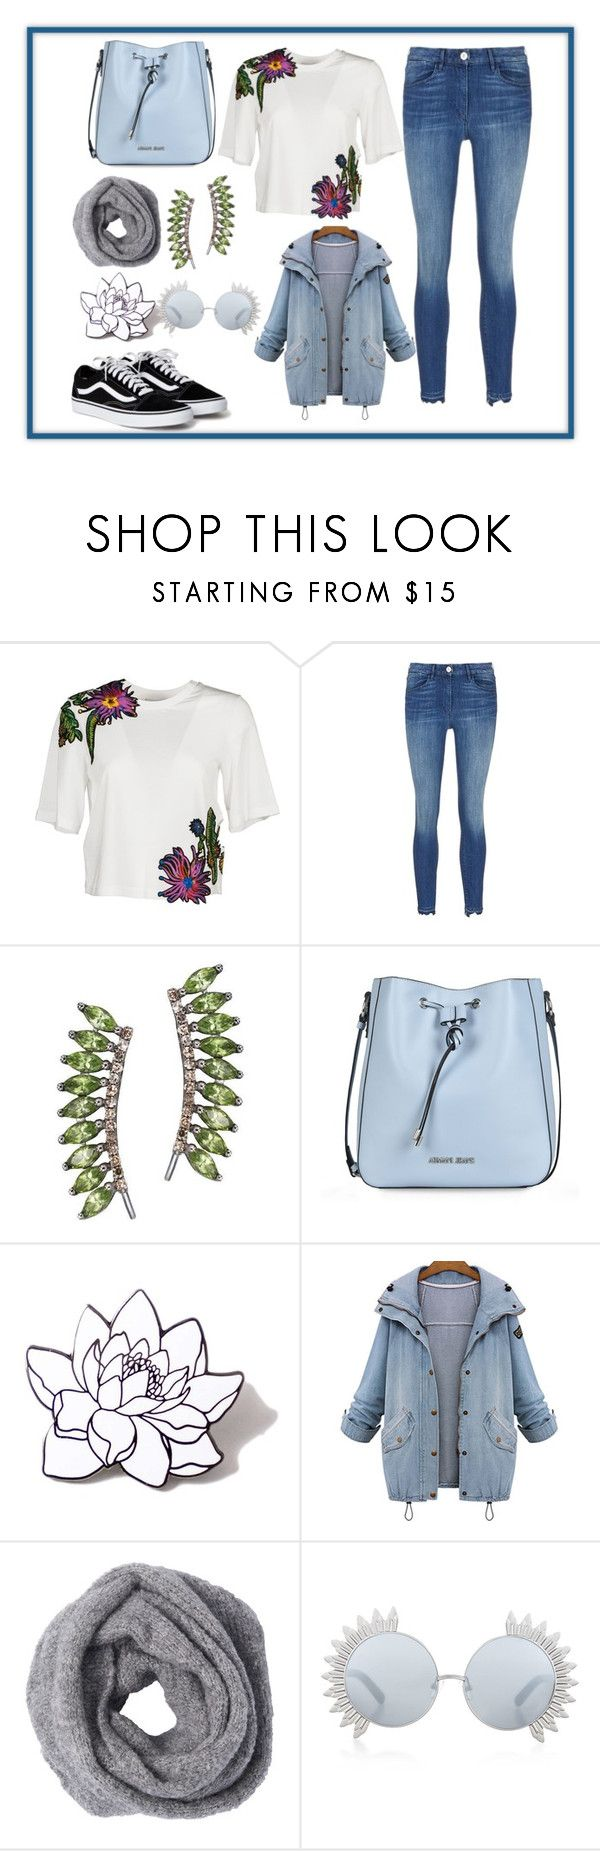 """I'M BLUE"" by emgone on Polyvore featuring 3.1 Phillip Lim, Sidney Chung, Armani Jeans, PINTRILL and Linda Farrow"